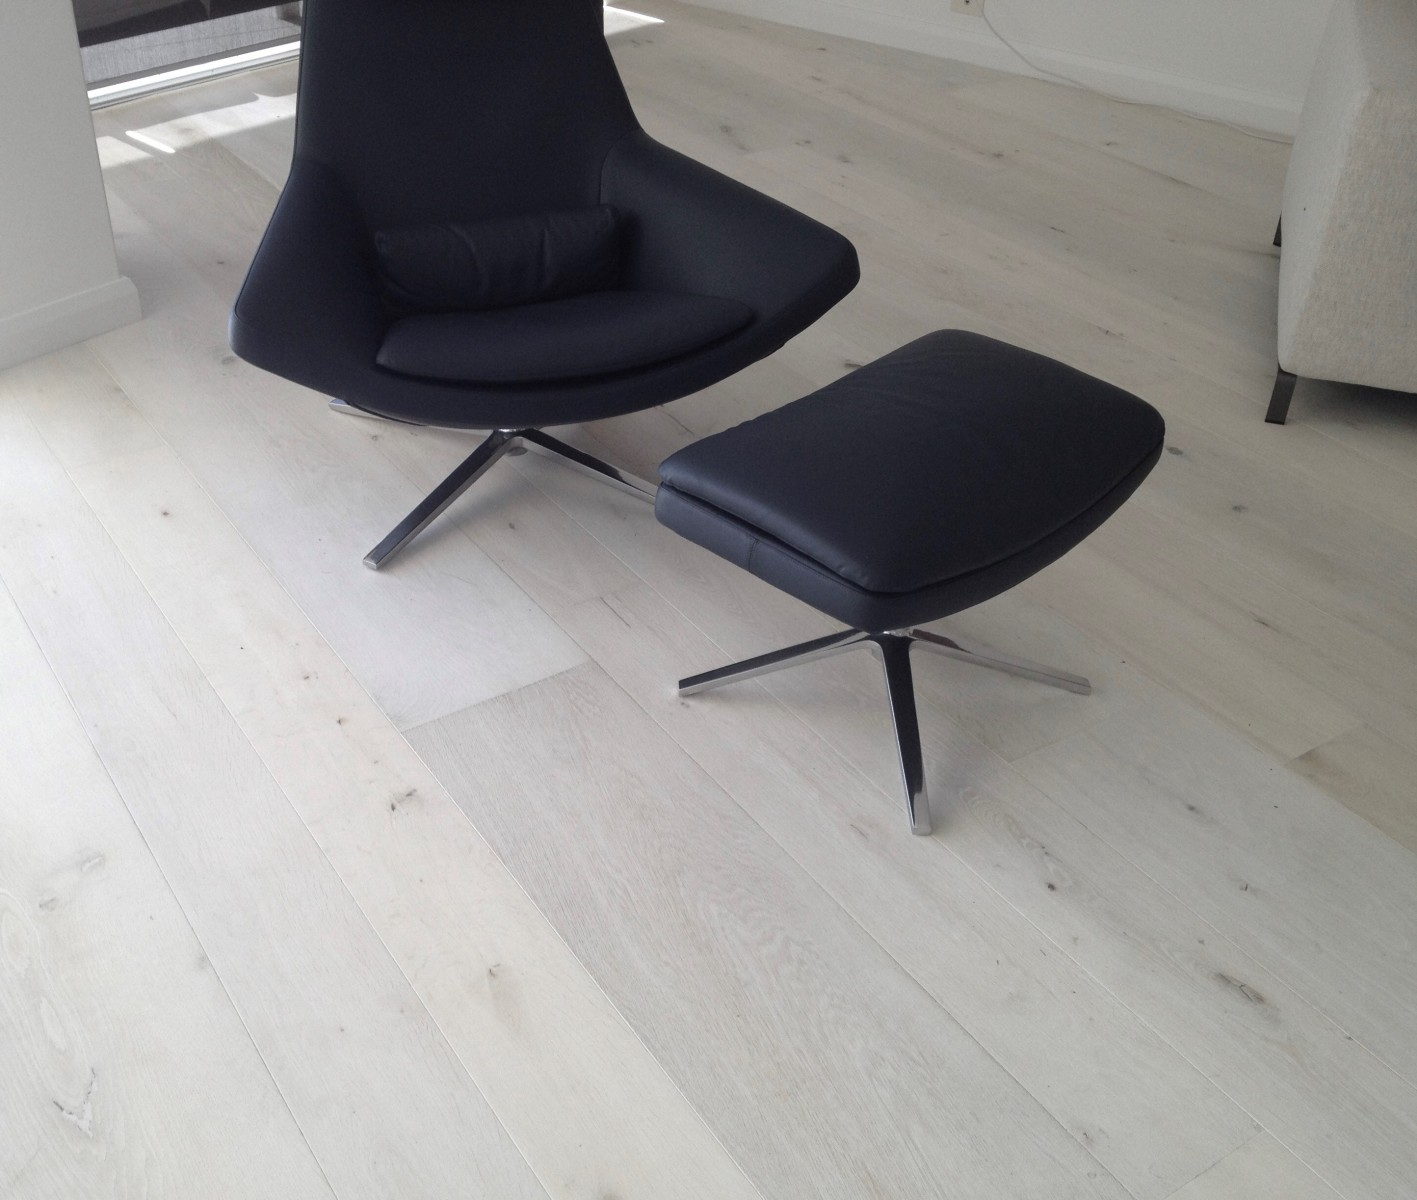 French Oak floor with chair bleached with LiteniT